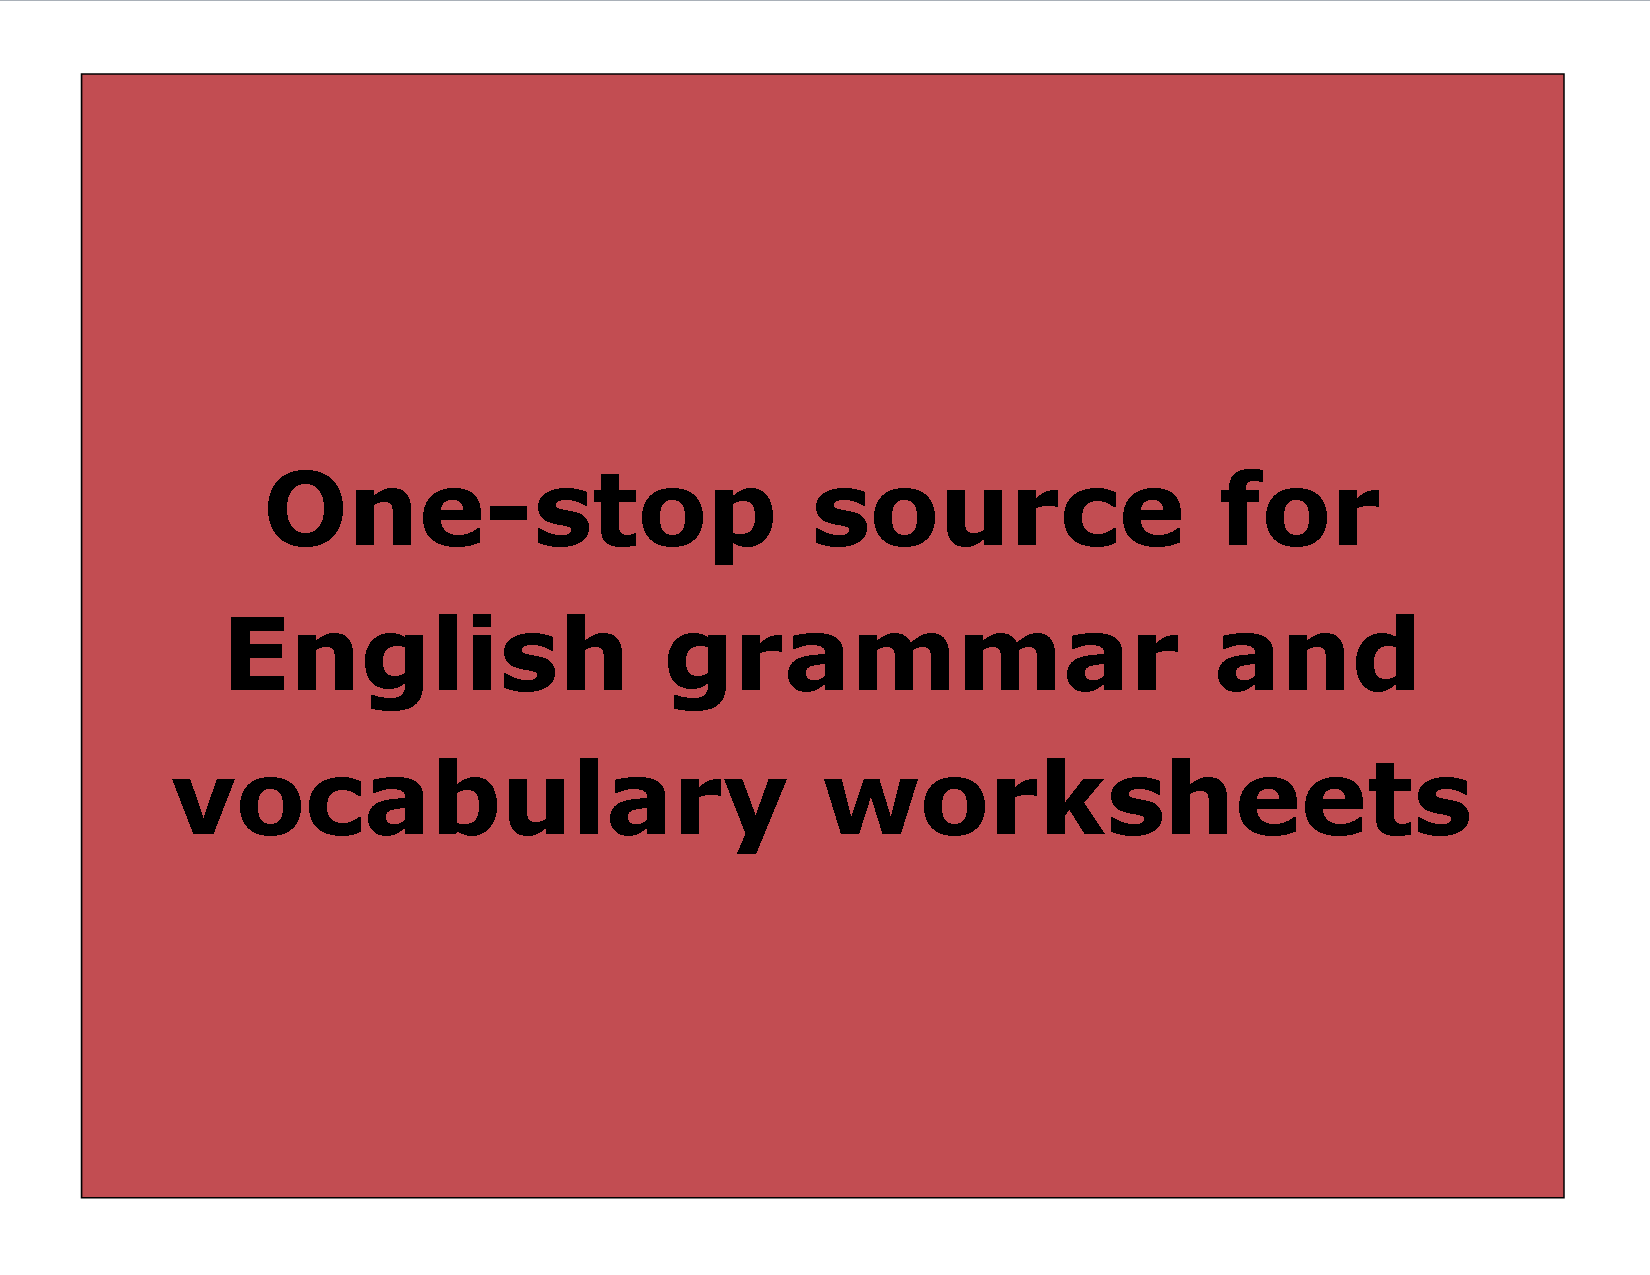 Free Worksheets Handouts Printables For Both Learners